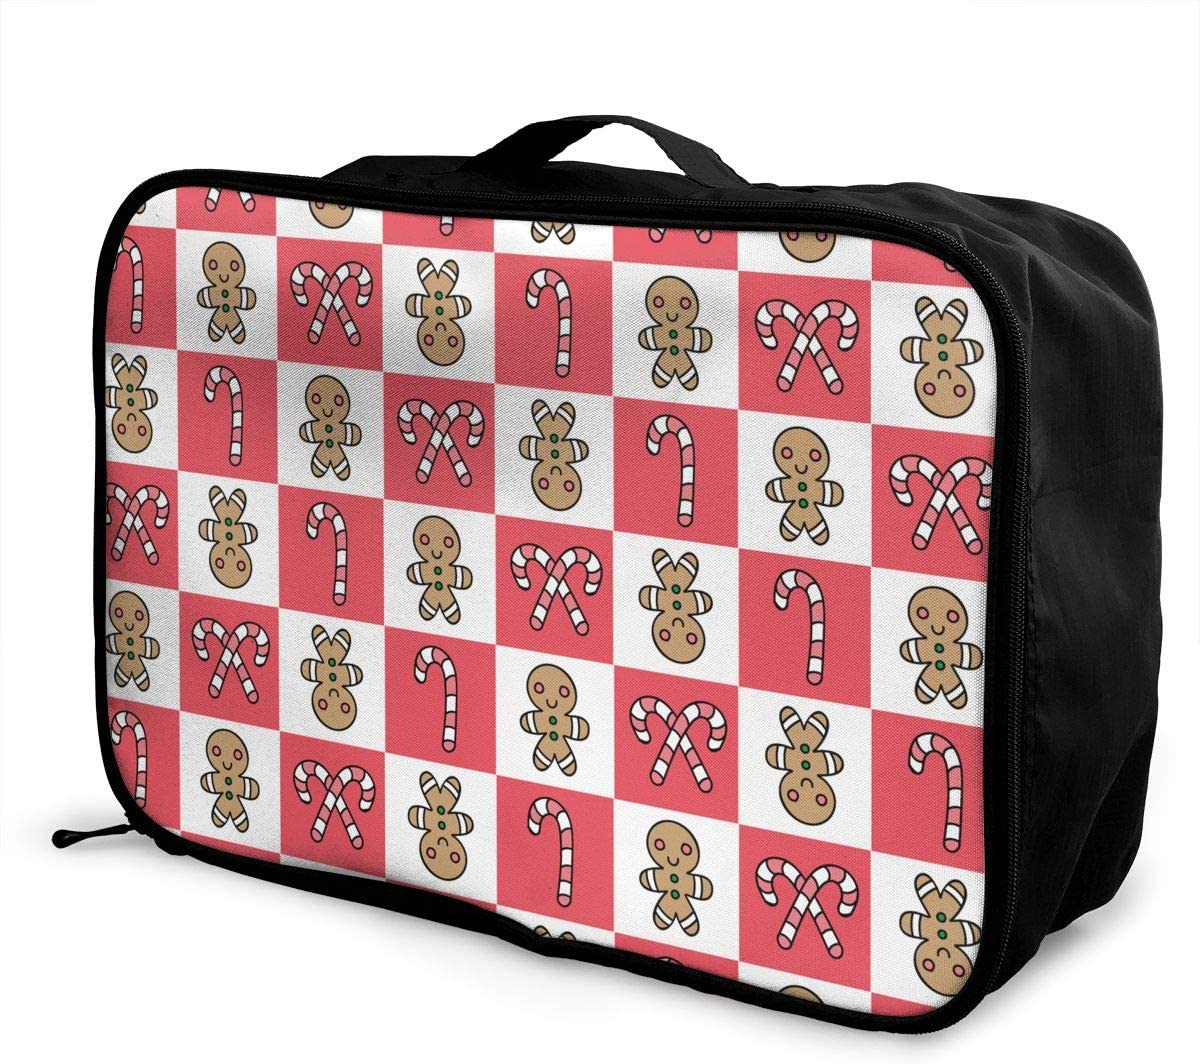 Candy Cookie Travel Carry-on Luggage Weekender Bag Overnight Tote Flight Duffel In Trolley Handle